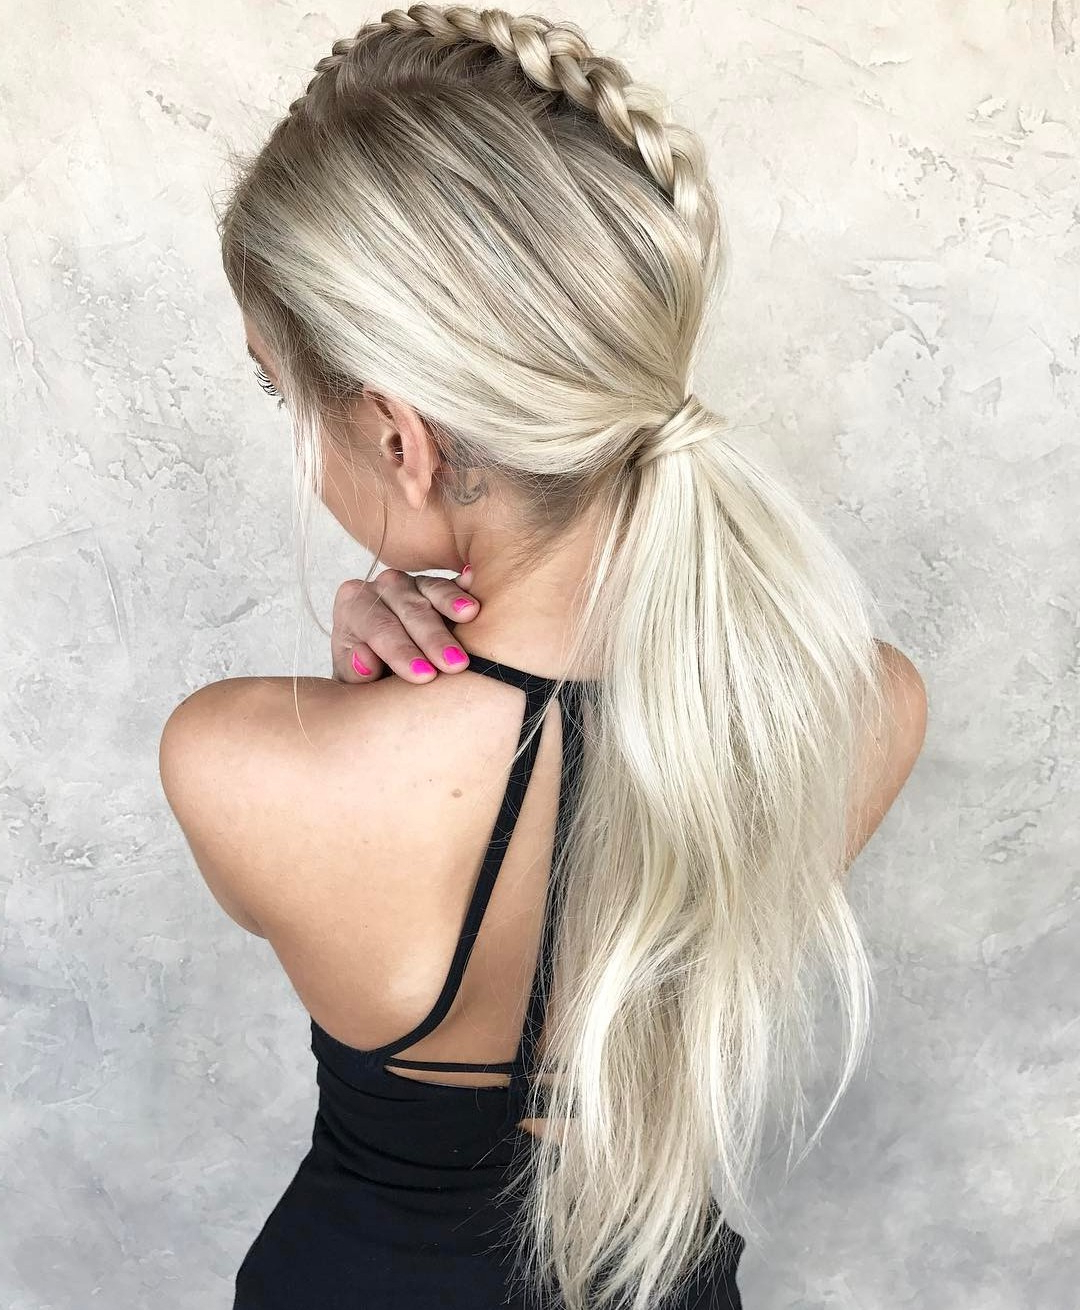 Current High Looped Ponytail Hairstyles With Hair Wrap With The 20 Most Alluring Ponytail Hairstyles (View 5 of 20)